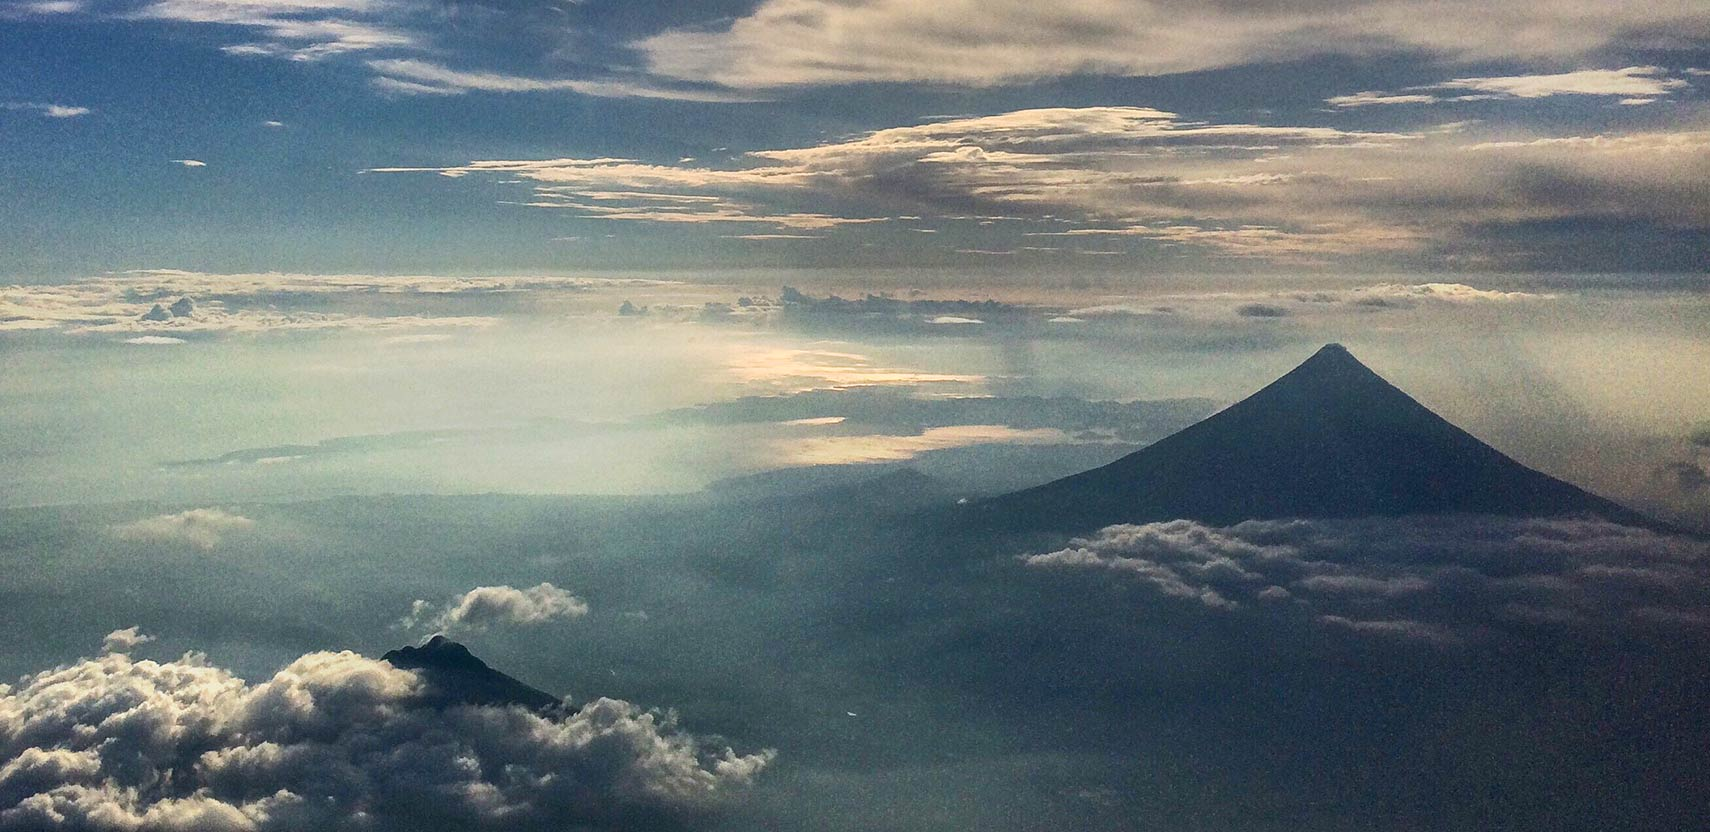 Mt. Mayon, a stratovolcano on the island of Luzon, Philippines